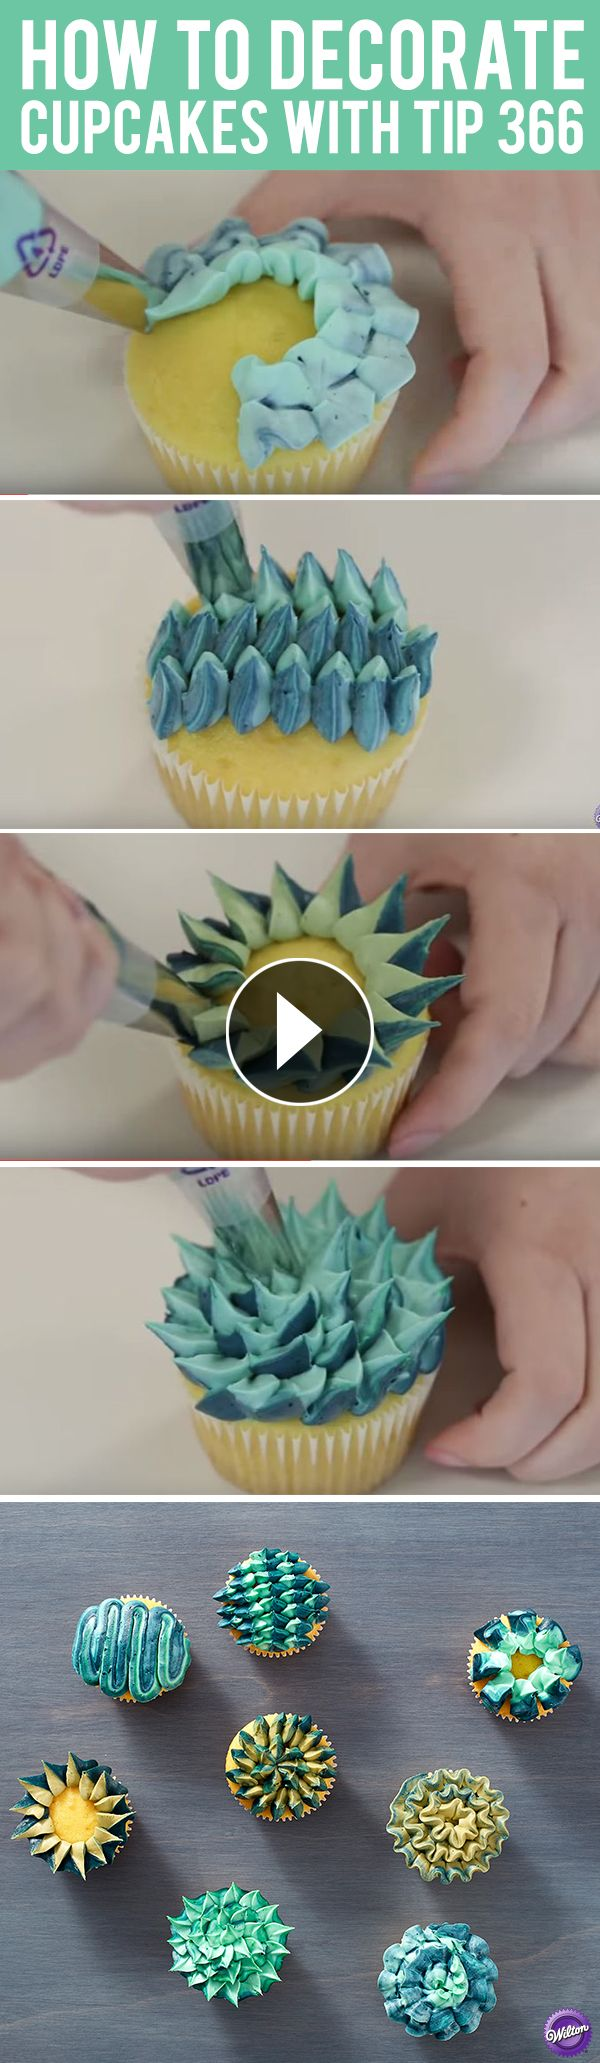 Learn 8 different ways to decorate cupcakes using only one tip - Wilton leaf decorating tip 366! A fun idea for parties and for decorators looking to fine-tune their piping skills, these fun cupcake designs can also be made using any icing color combination you'd like. #cakedecoratingvideos